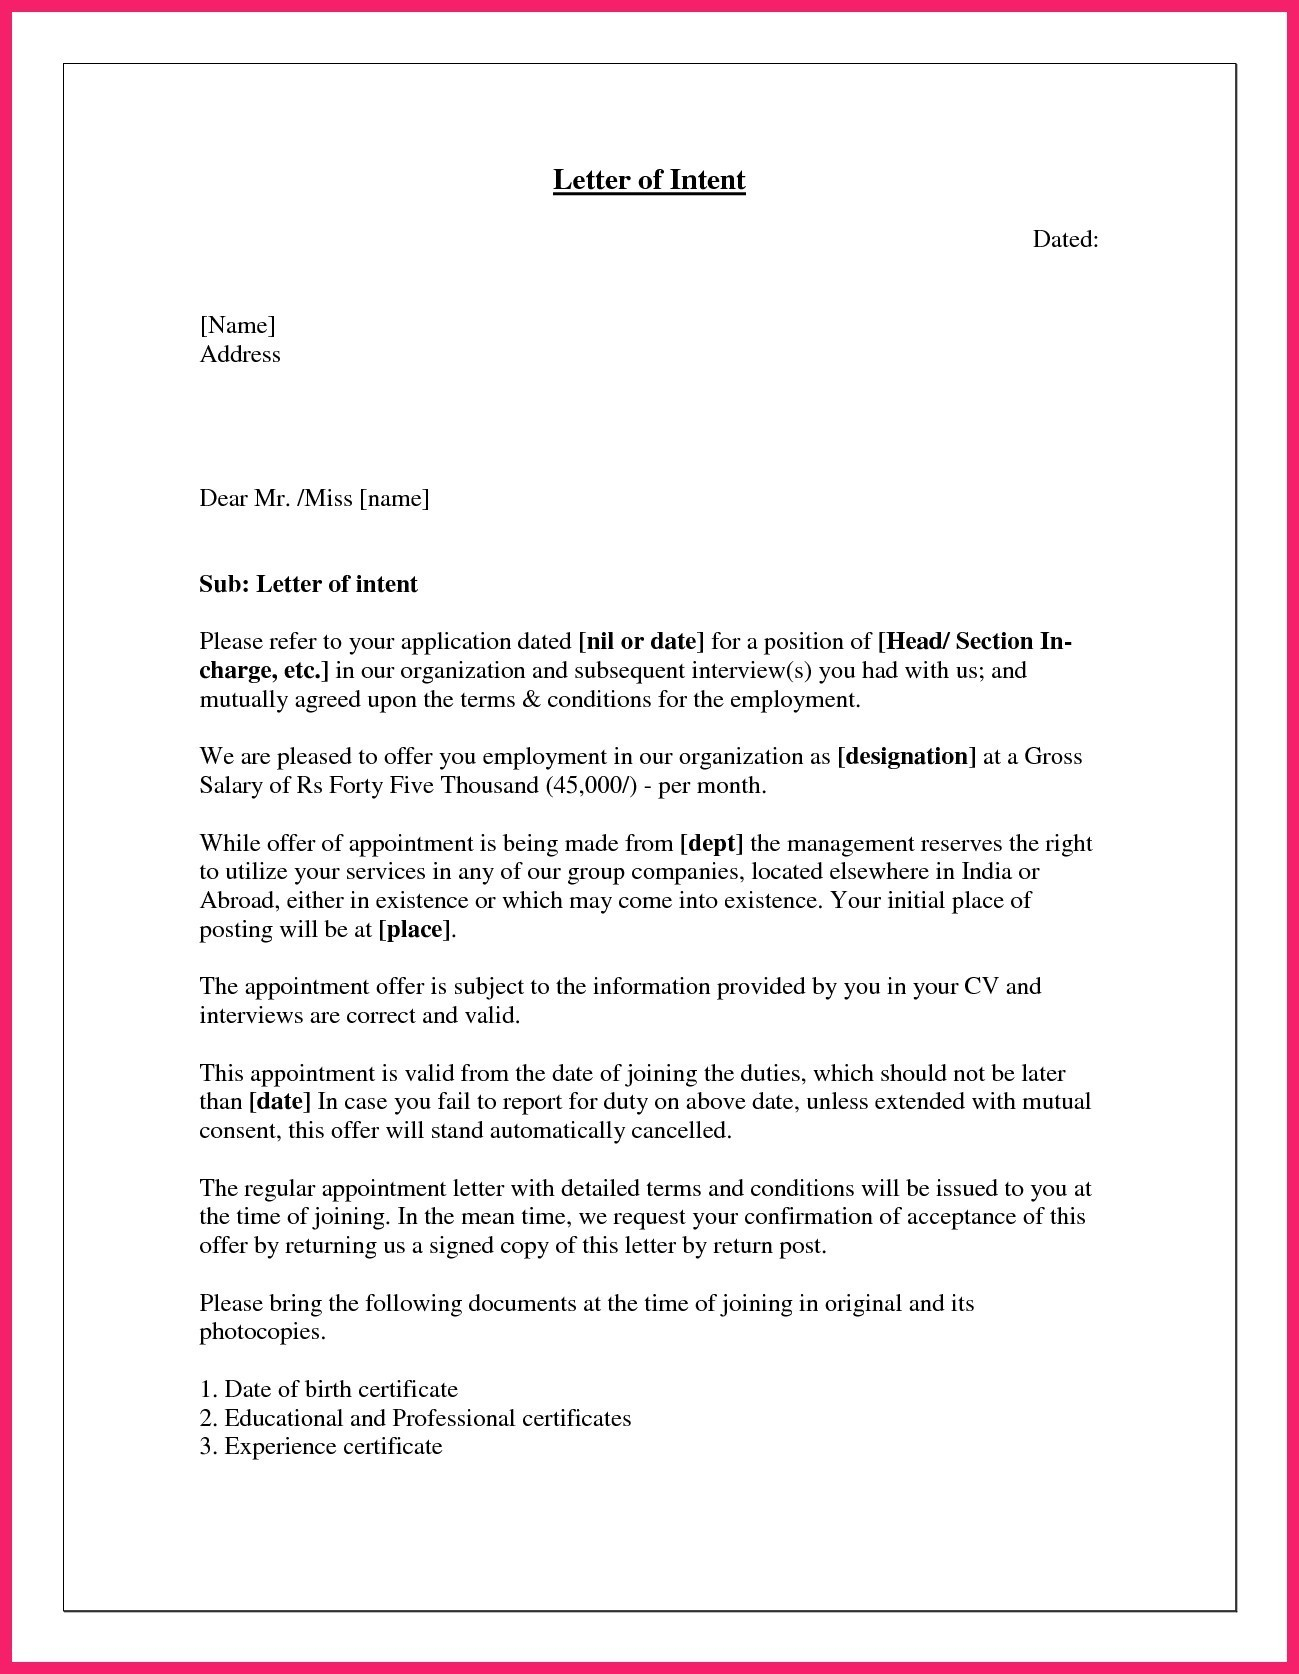 Real Estate Offer Letter Template Free - Joining Letter format In Ms Word Fresh Sales Fer Letter Home Aide